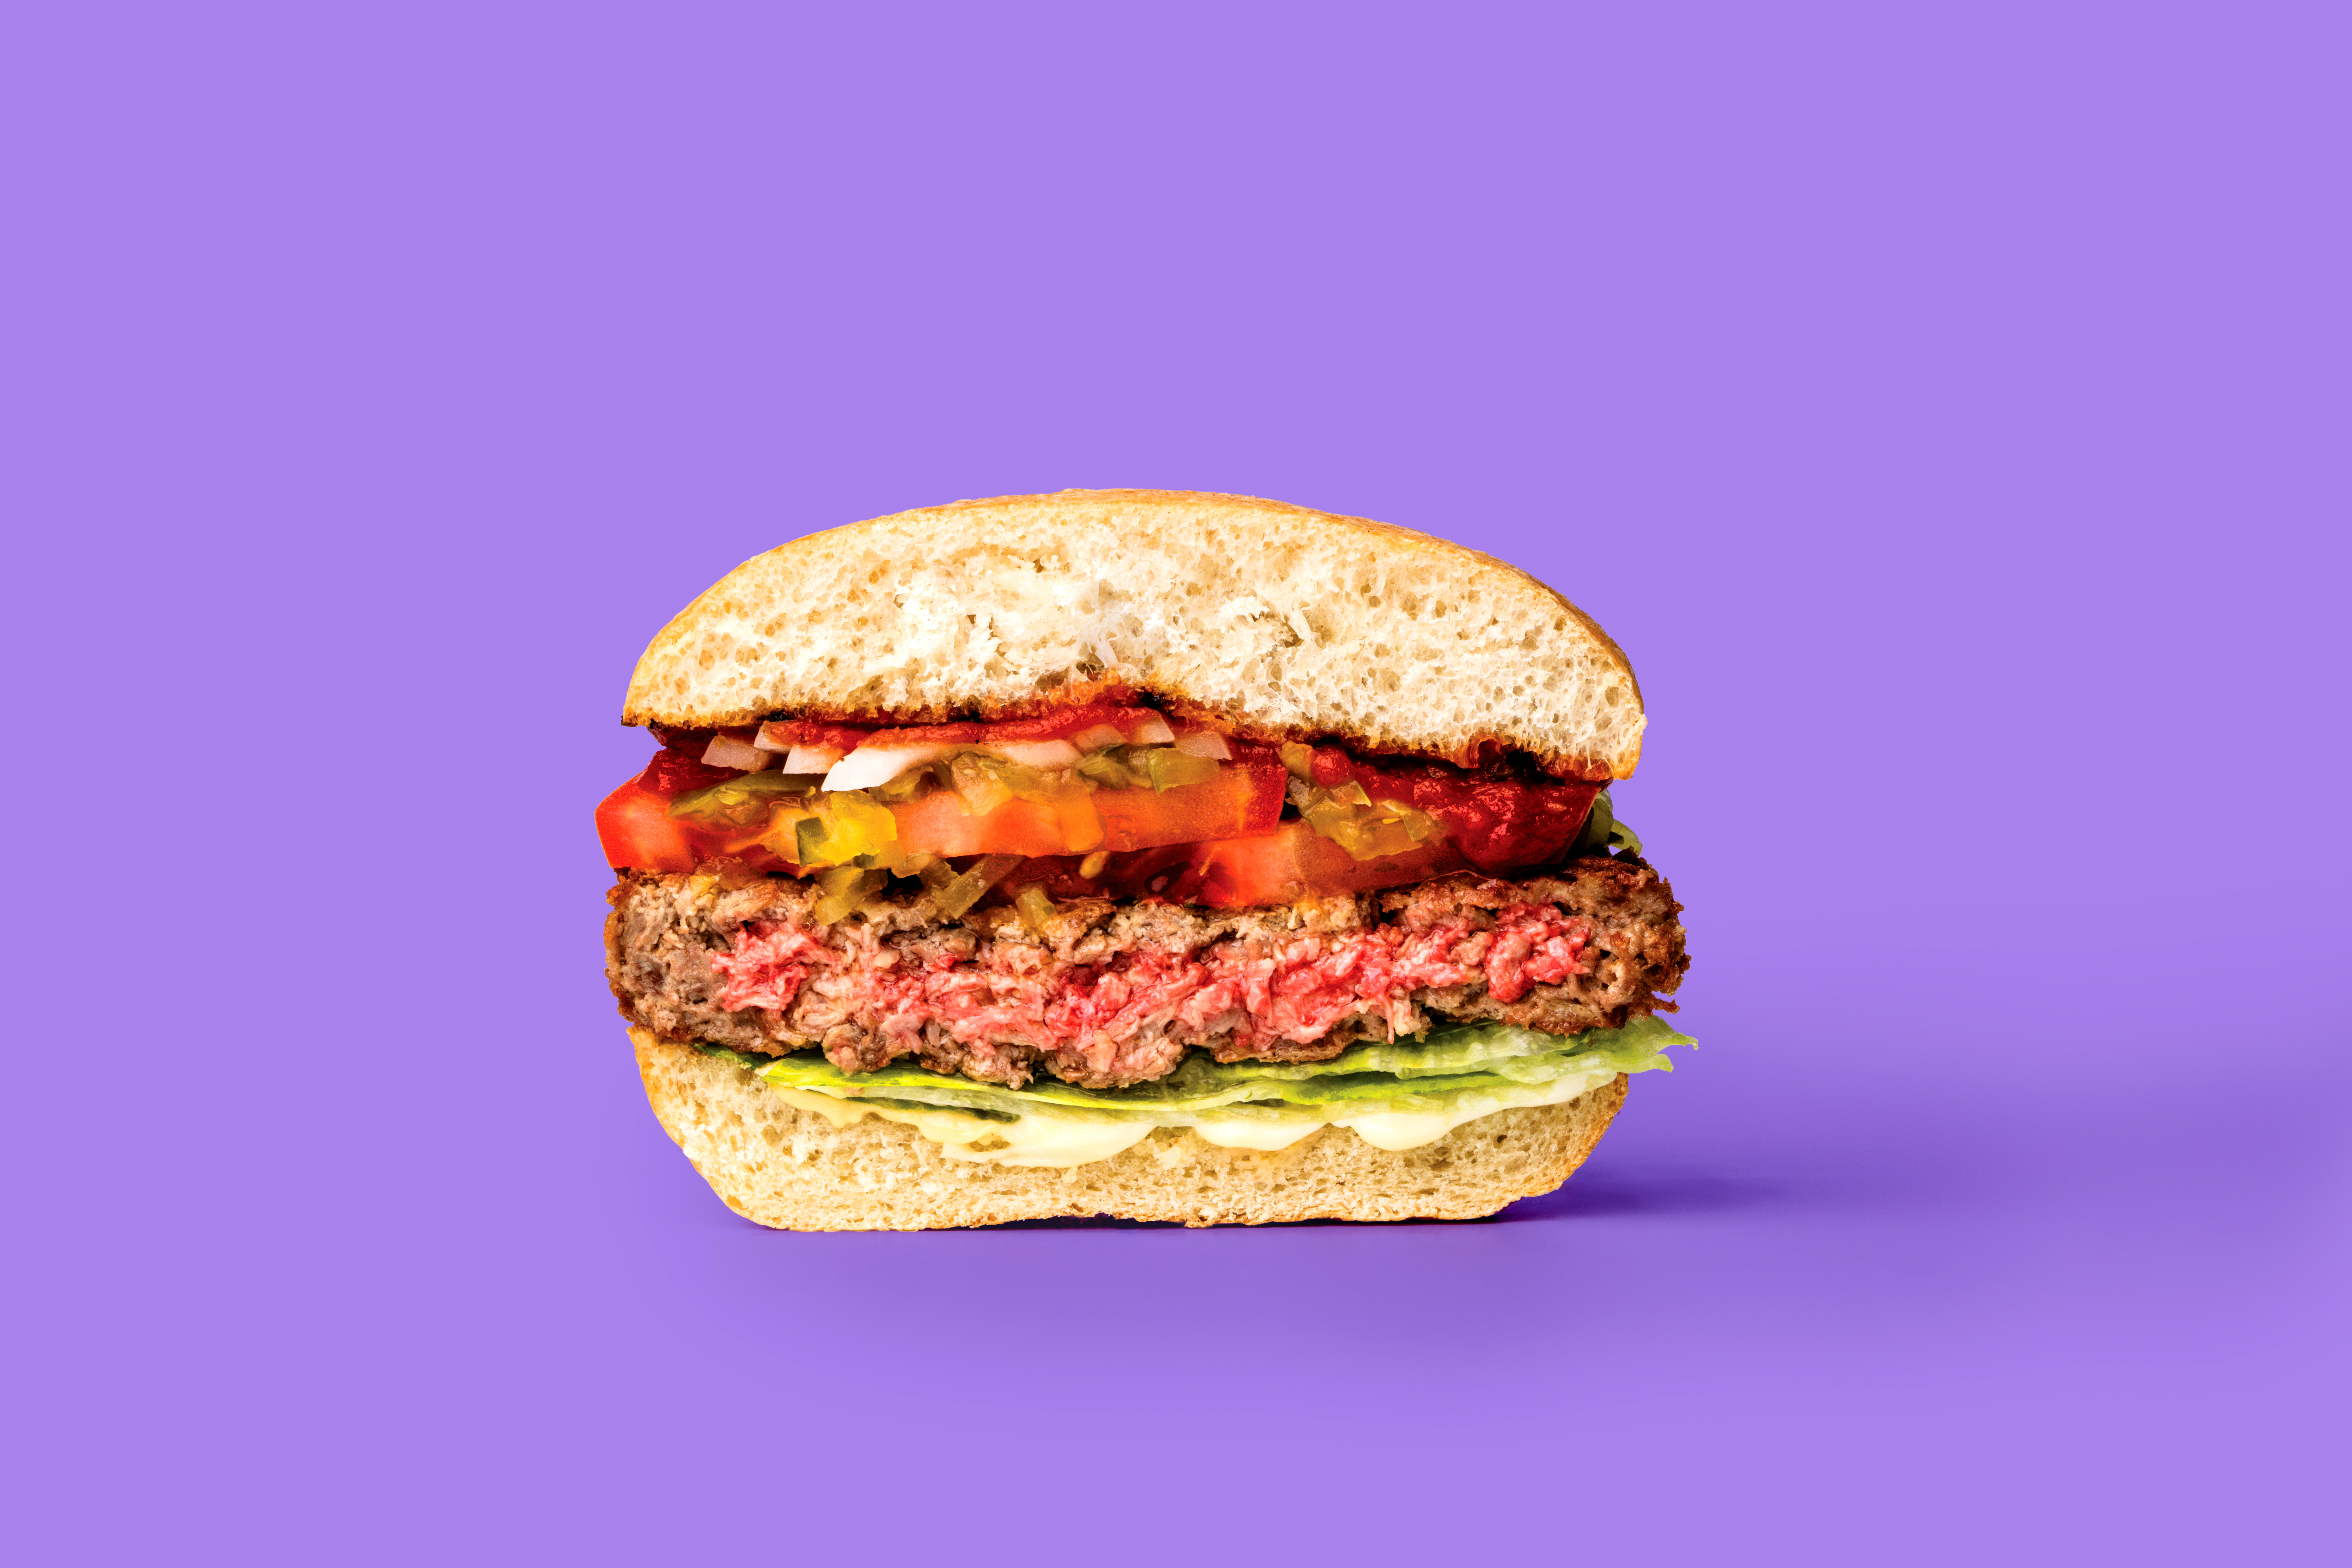 cross-section of a hamburger made with a meatless patty from Impossible Foods